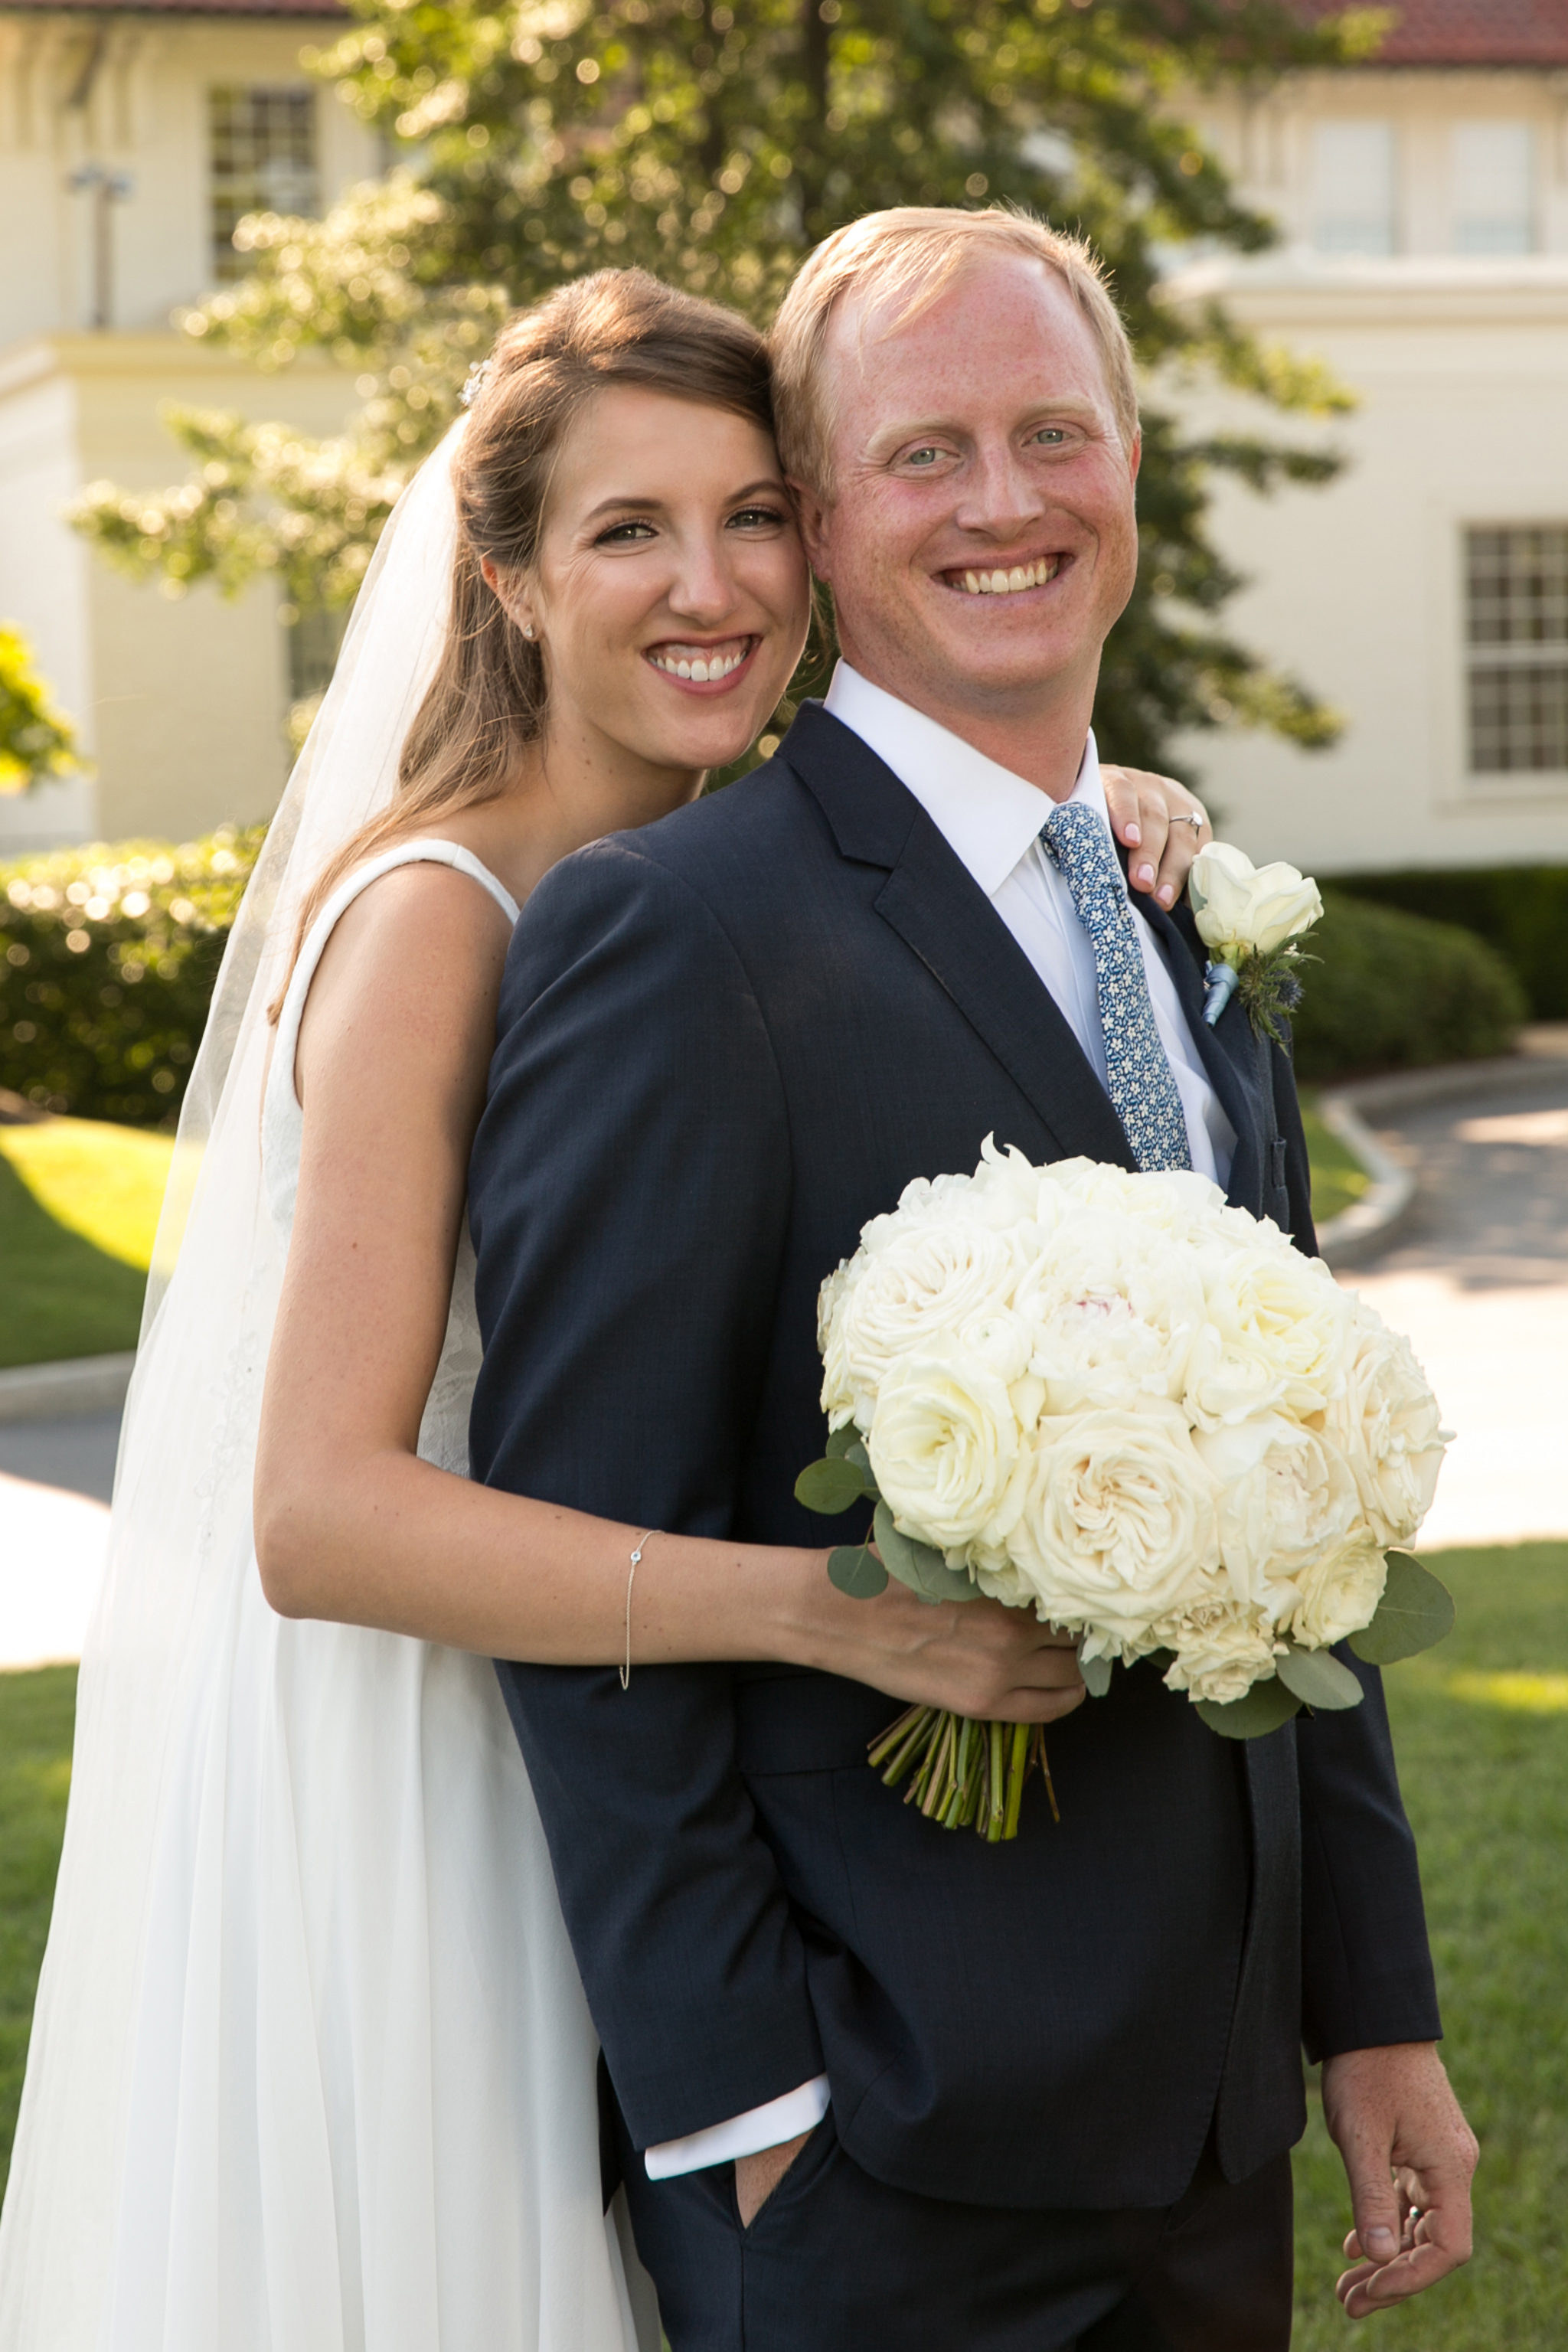 Atelier Ashley Flowers + Dusty Blue + Borrowed and Blue Photography + Congressional Country Club + DC wedding +  wedding portrait